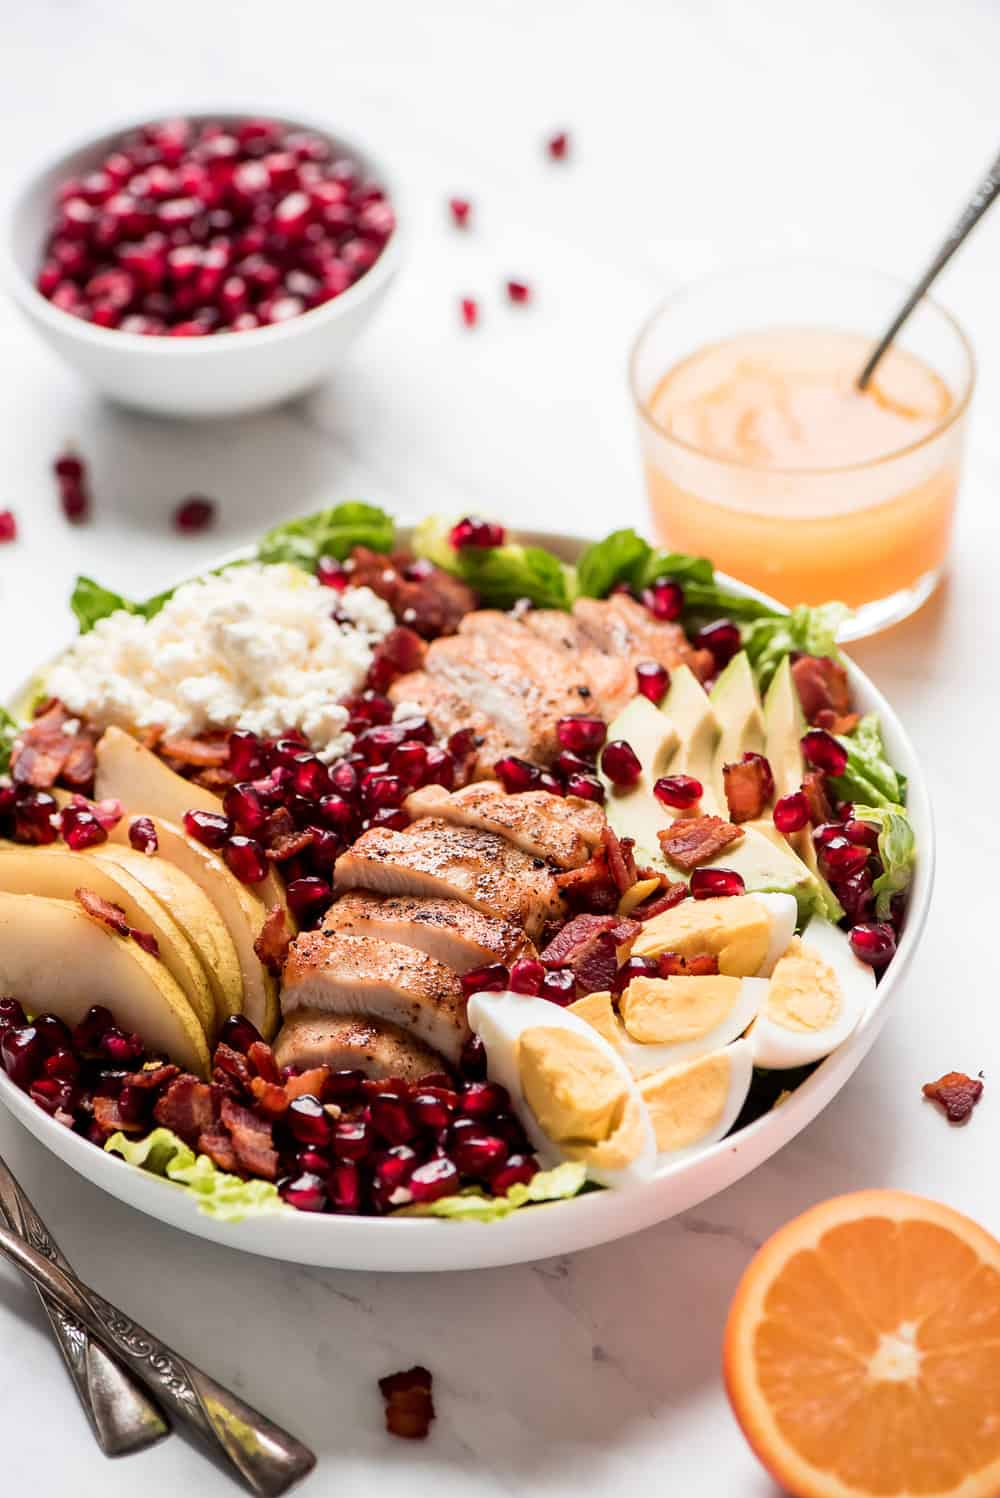 Winter cobb salad in a white bowl.